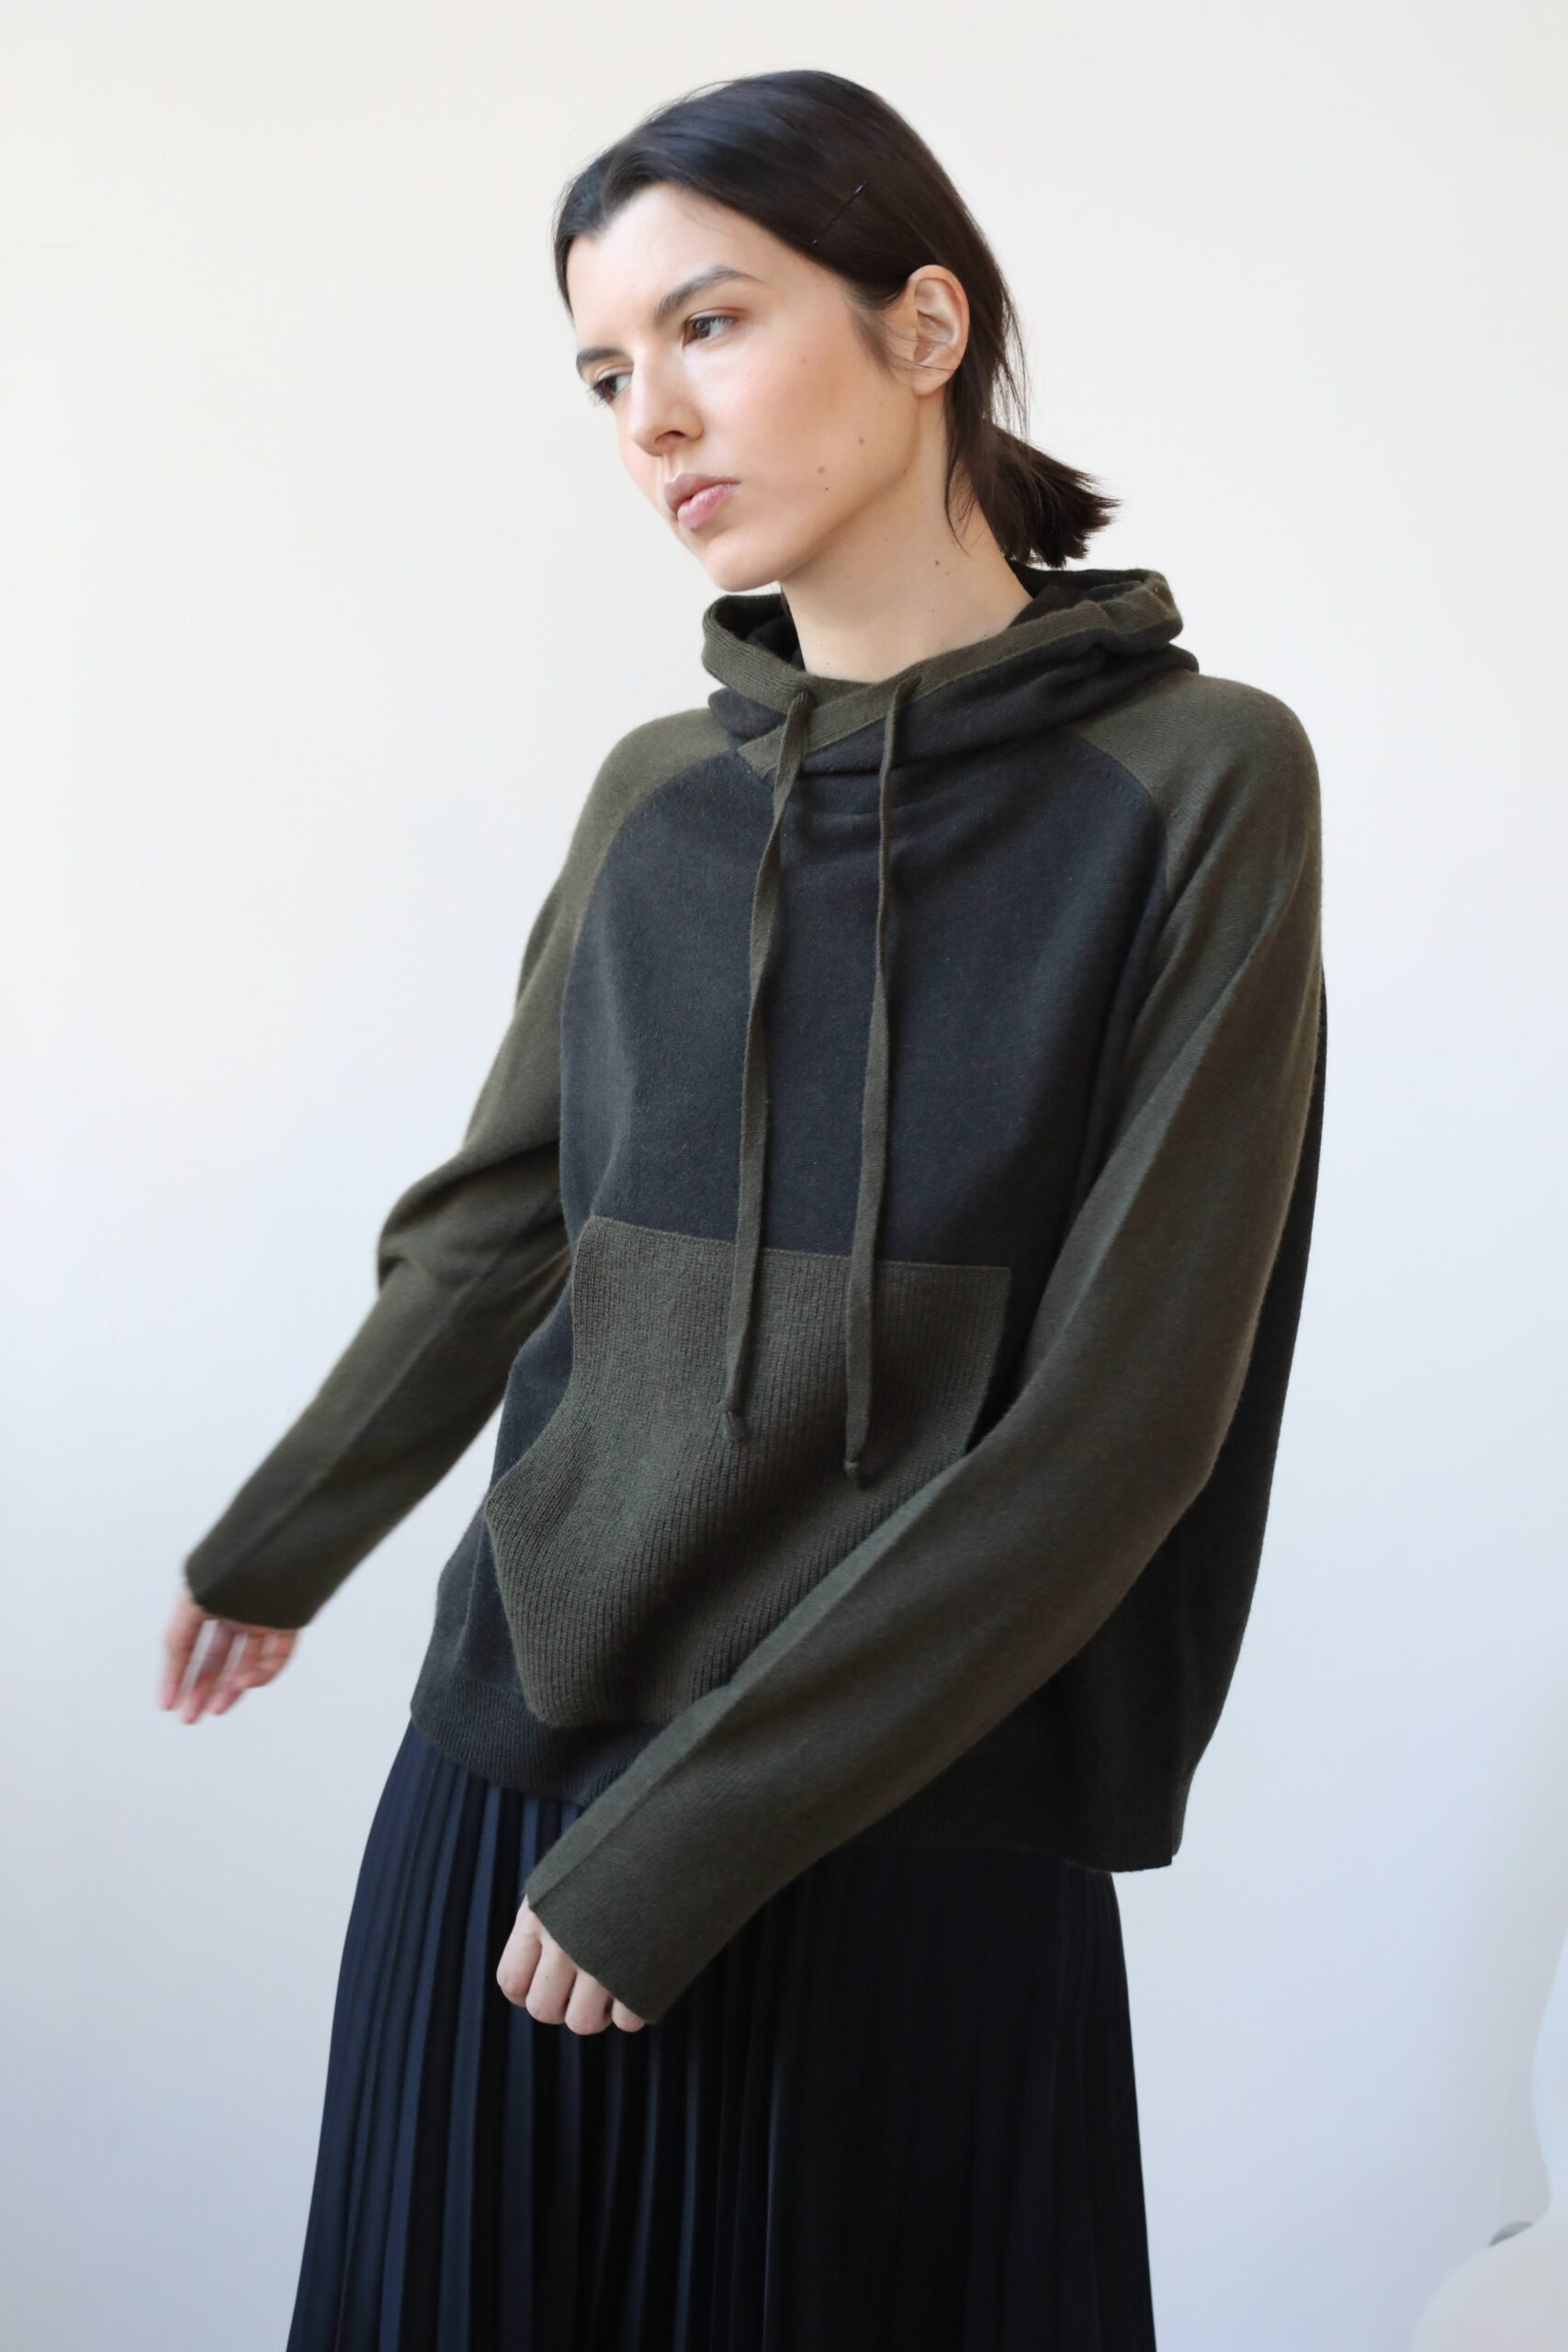 Girl in khaki green and brown cashmere hoodie